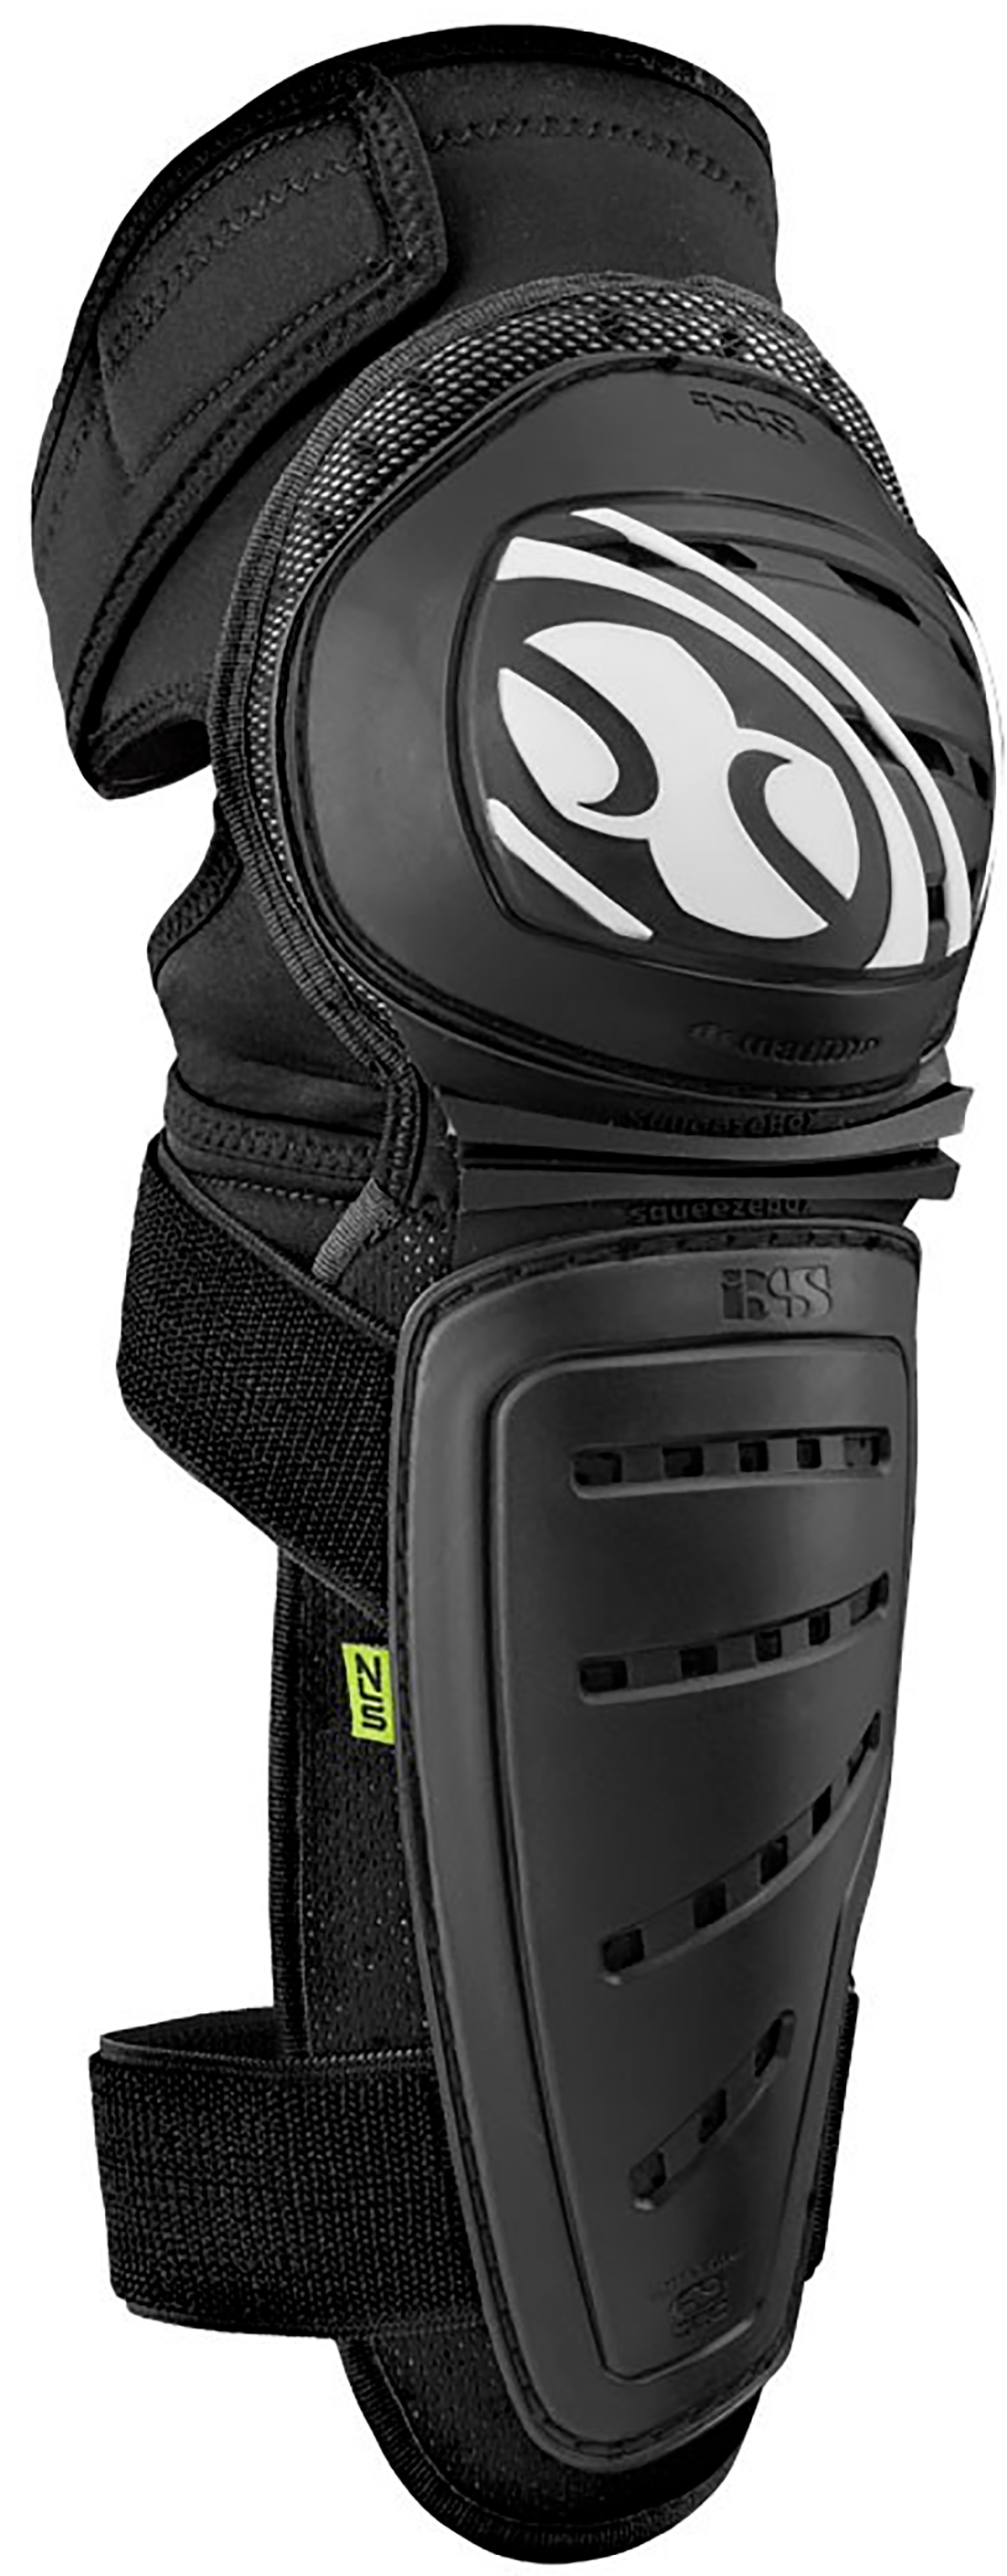 Knee Brace/Shin MTB/MOUNTAIN BICYCLE IXS Mallet for DH